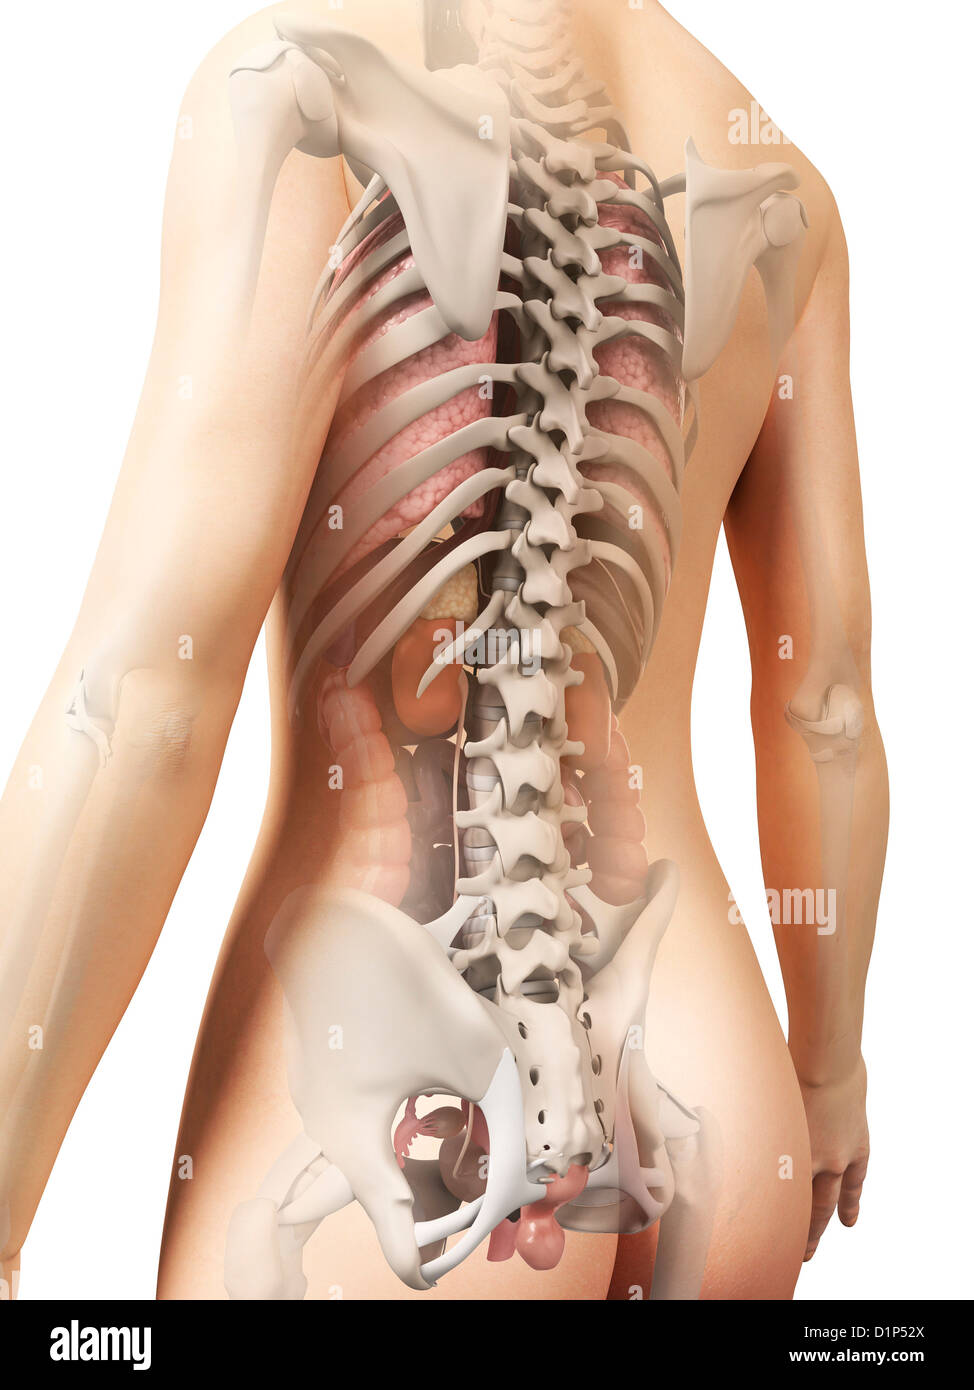 Anatomy Female Pelvis Stock Photos & Anatomy Female Pelvis Stock ...